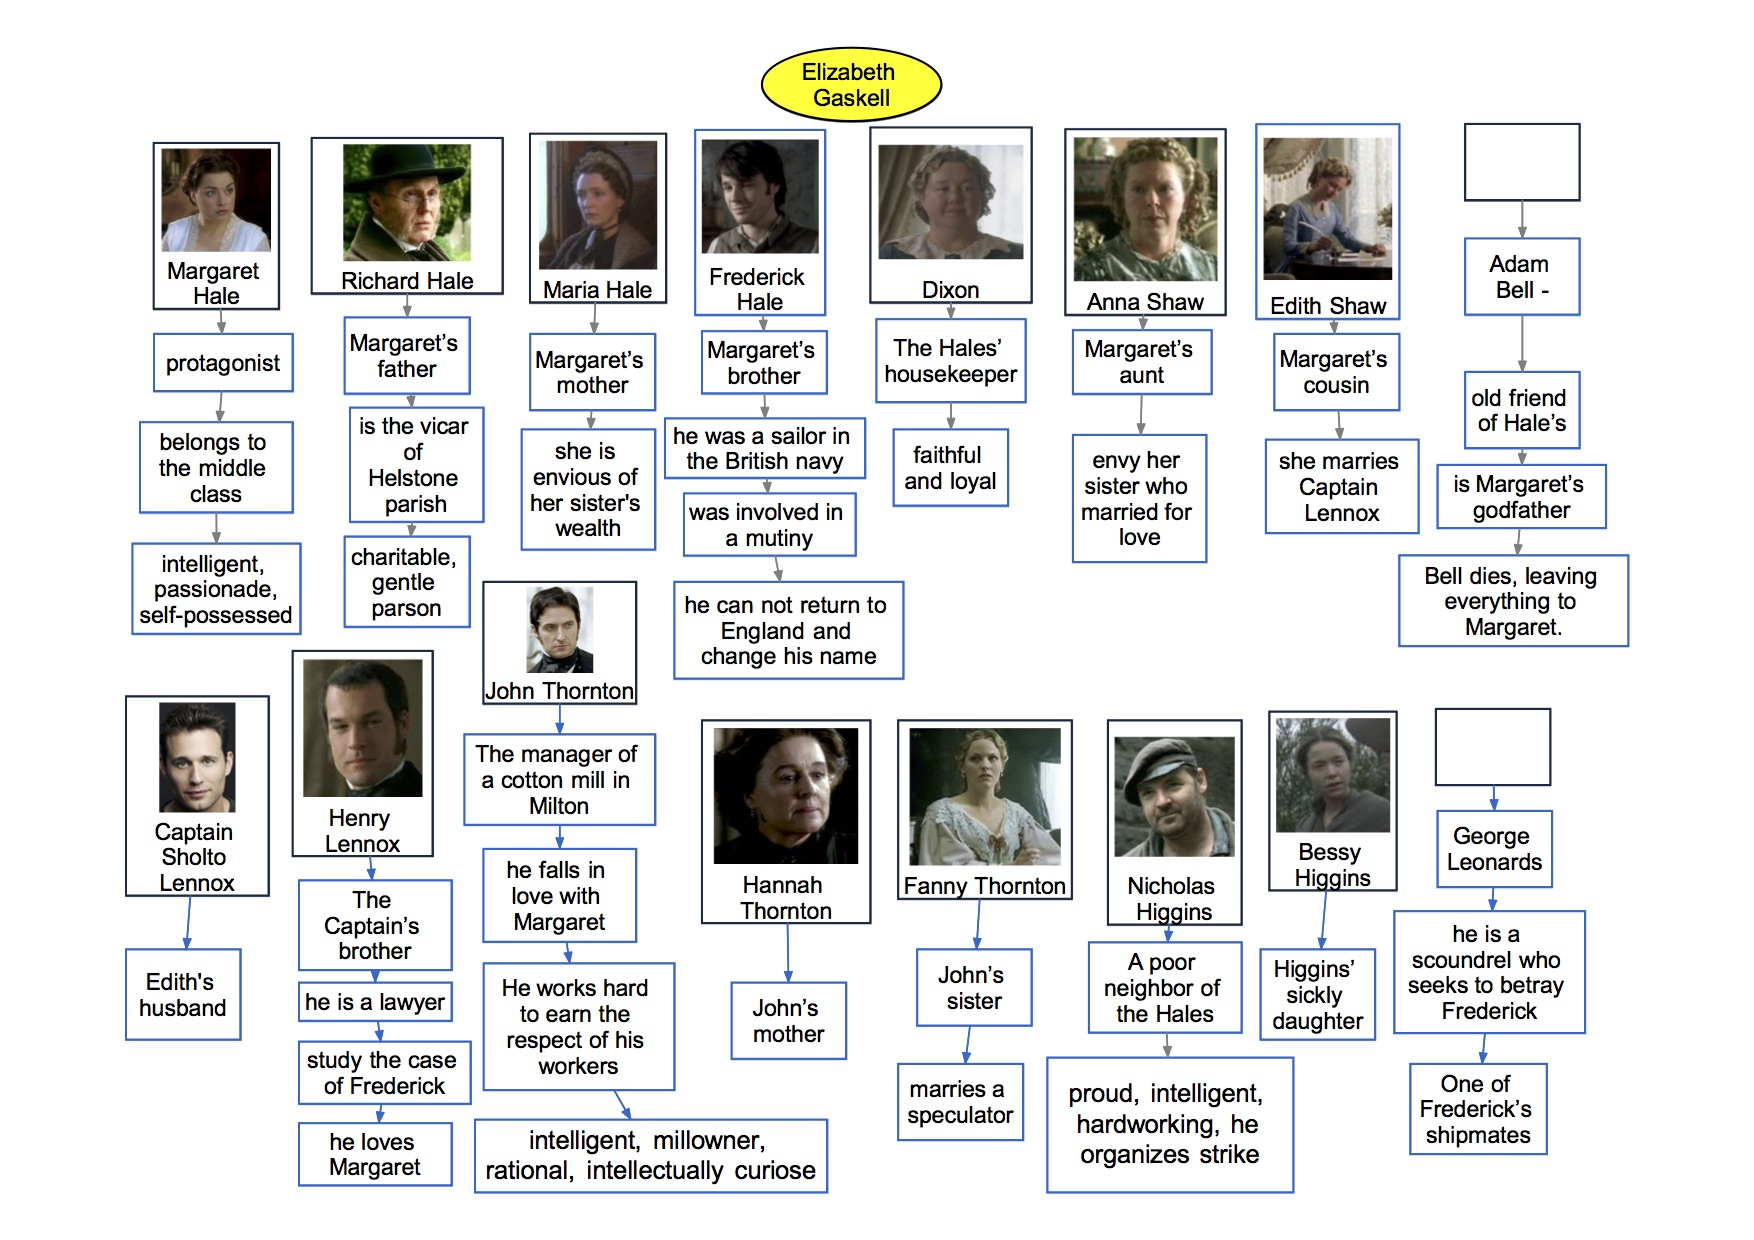 mappa concettuale visual map Inglese  Elizabeth Gaskell north and south characters